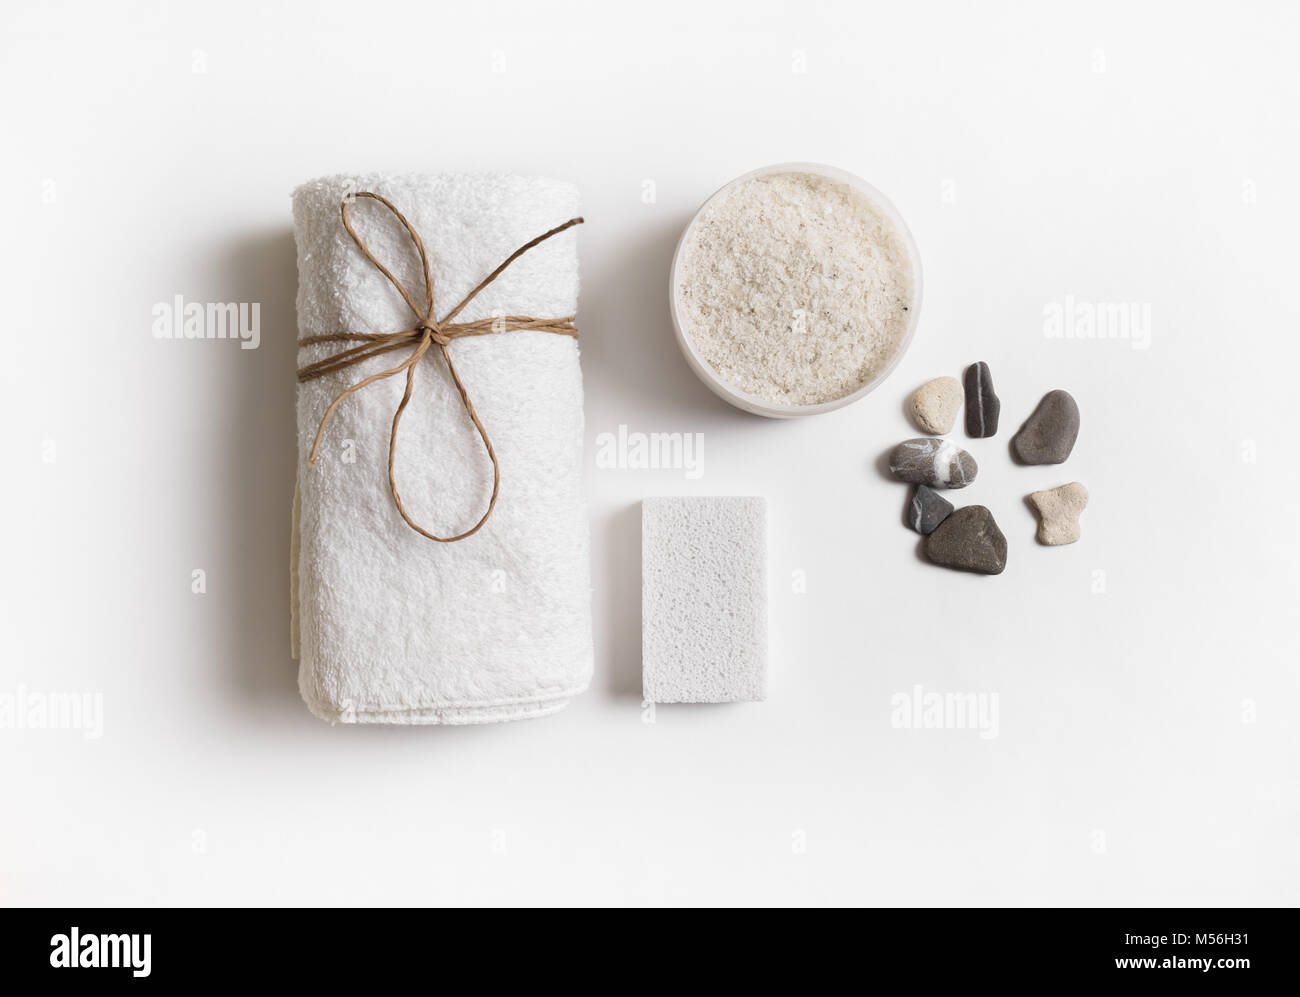 Beauty and spa concept - Stock Image